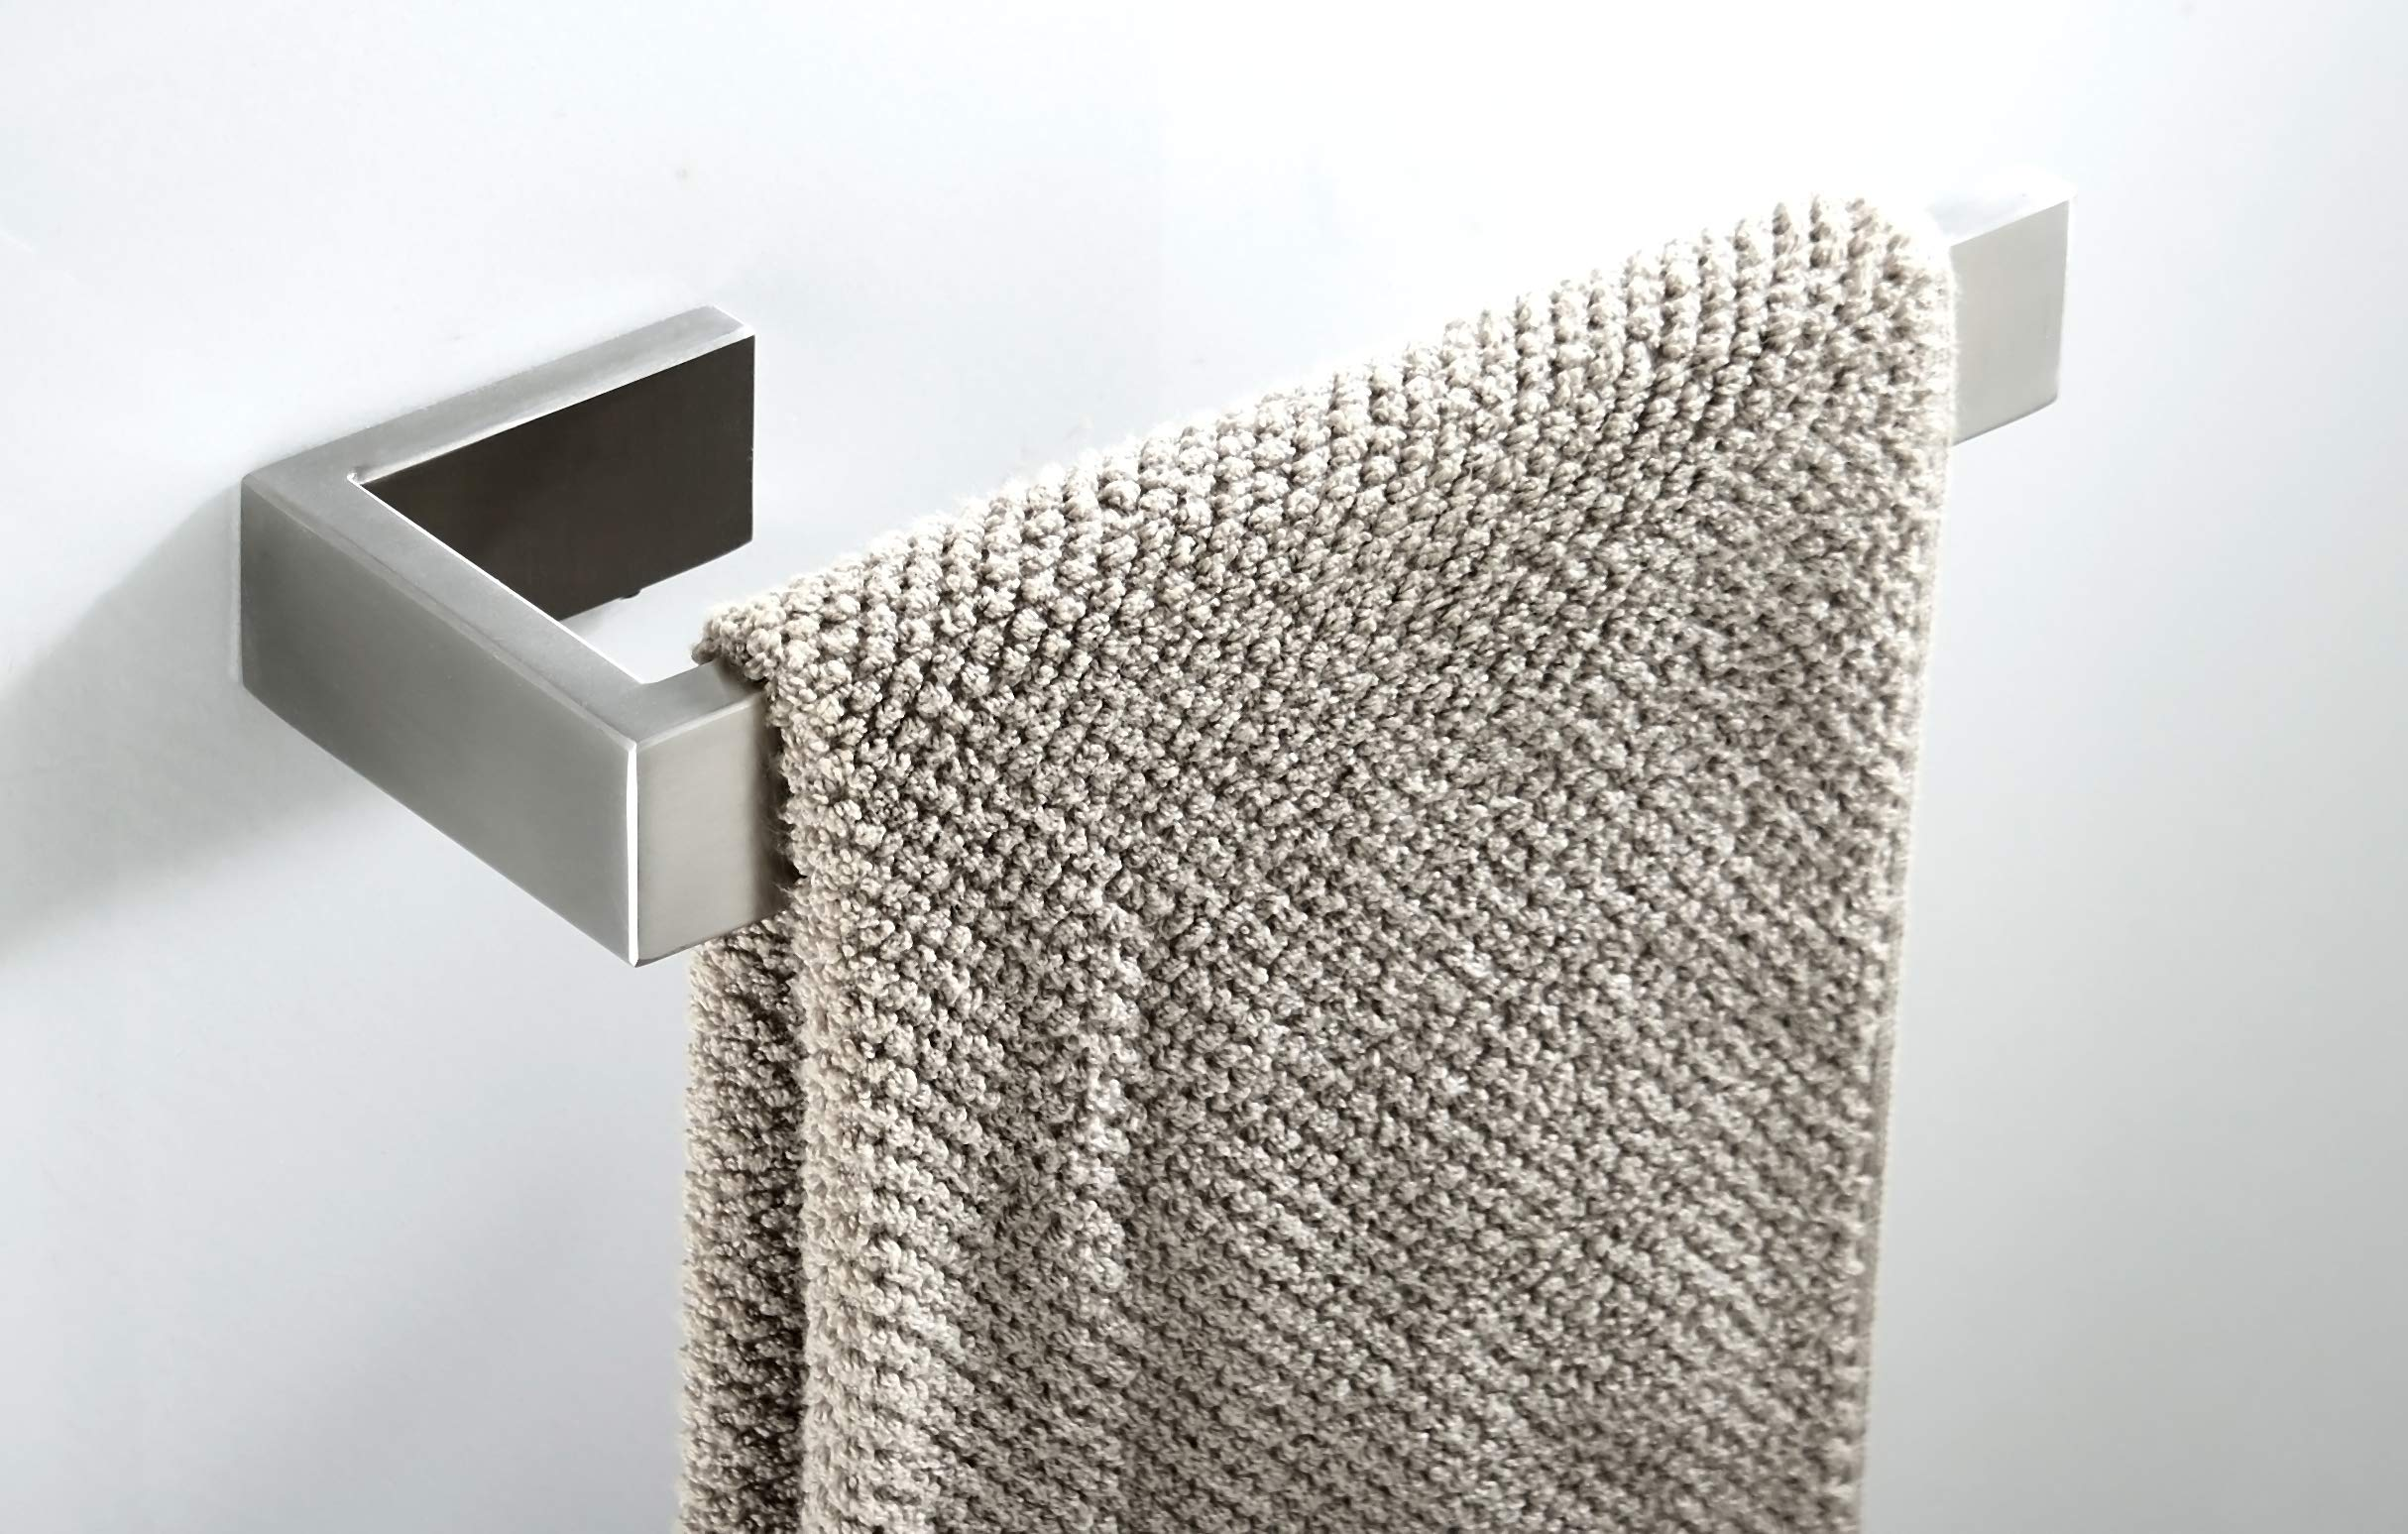 Towel Bar, Hand Towel Holder Stainless Steel SUS 304, Bathroom Hardware Accessory Towel Rack, Contemporary Style, Brushed Nickel Wall Mounted by May & Z